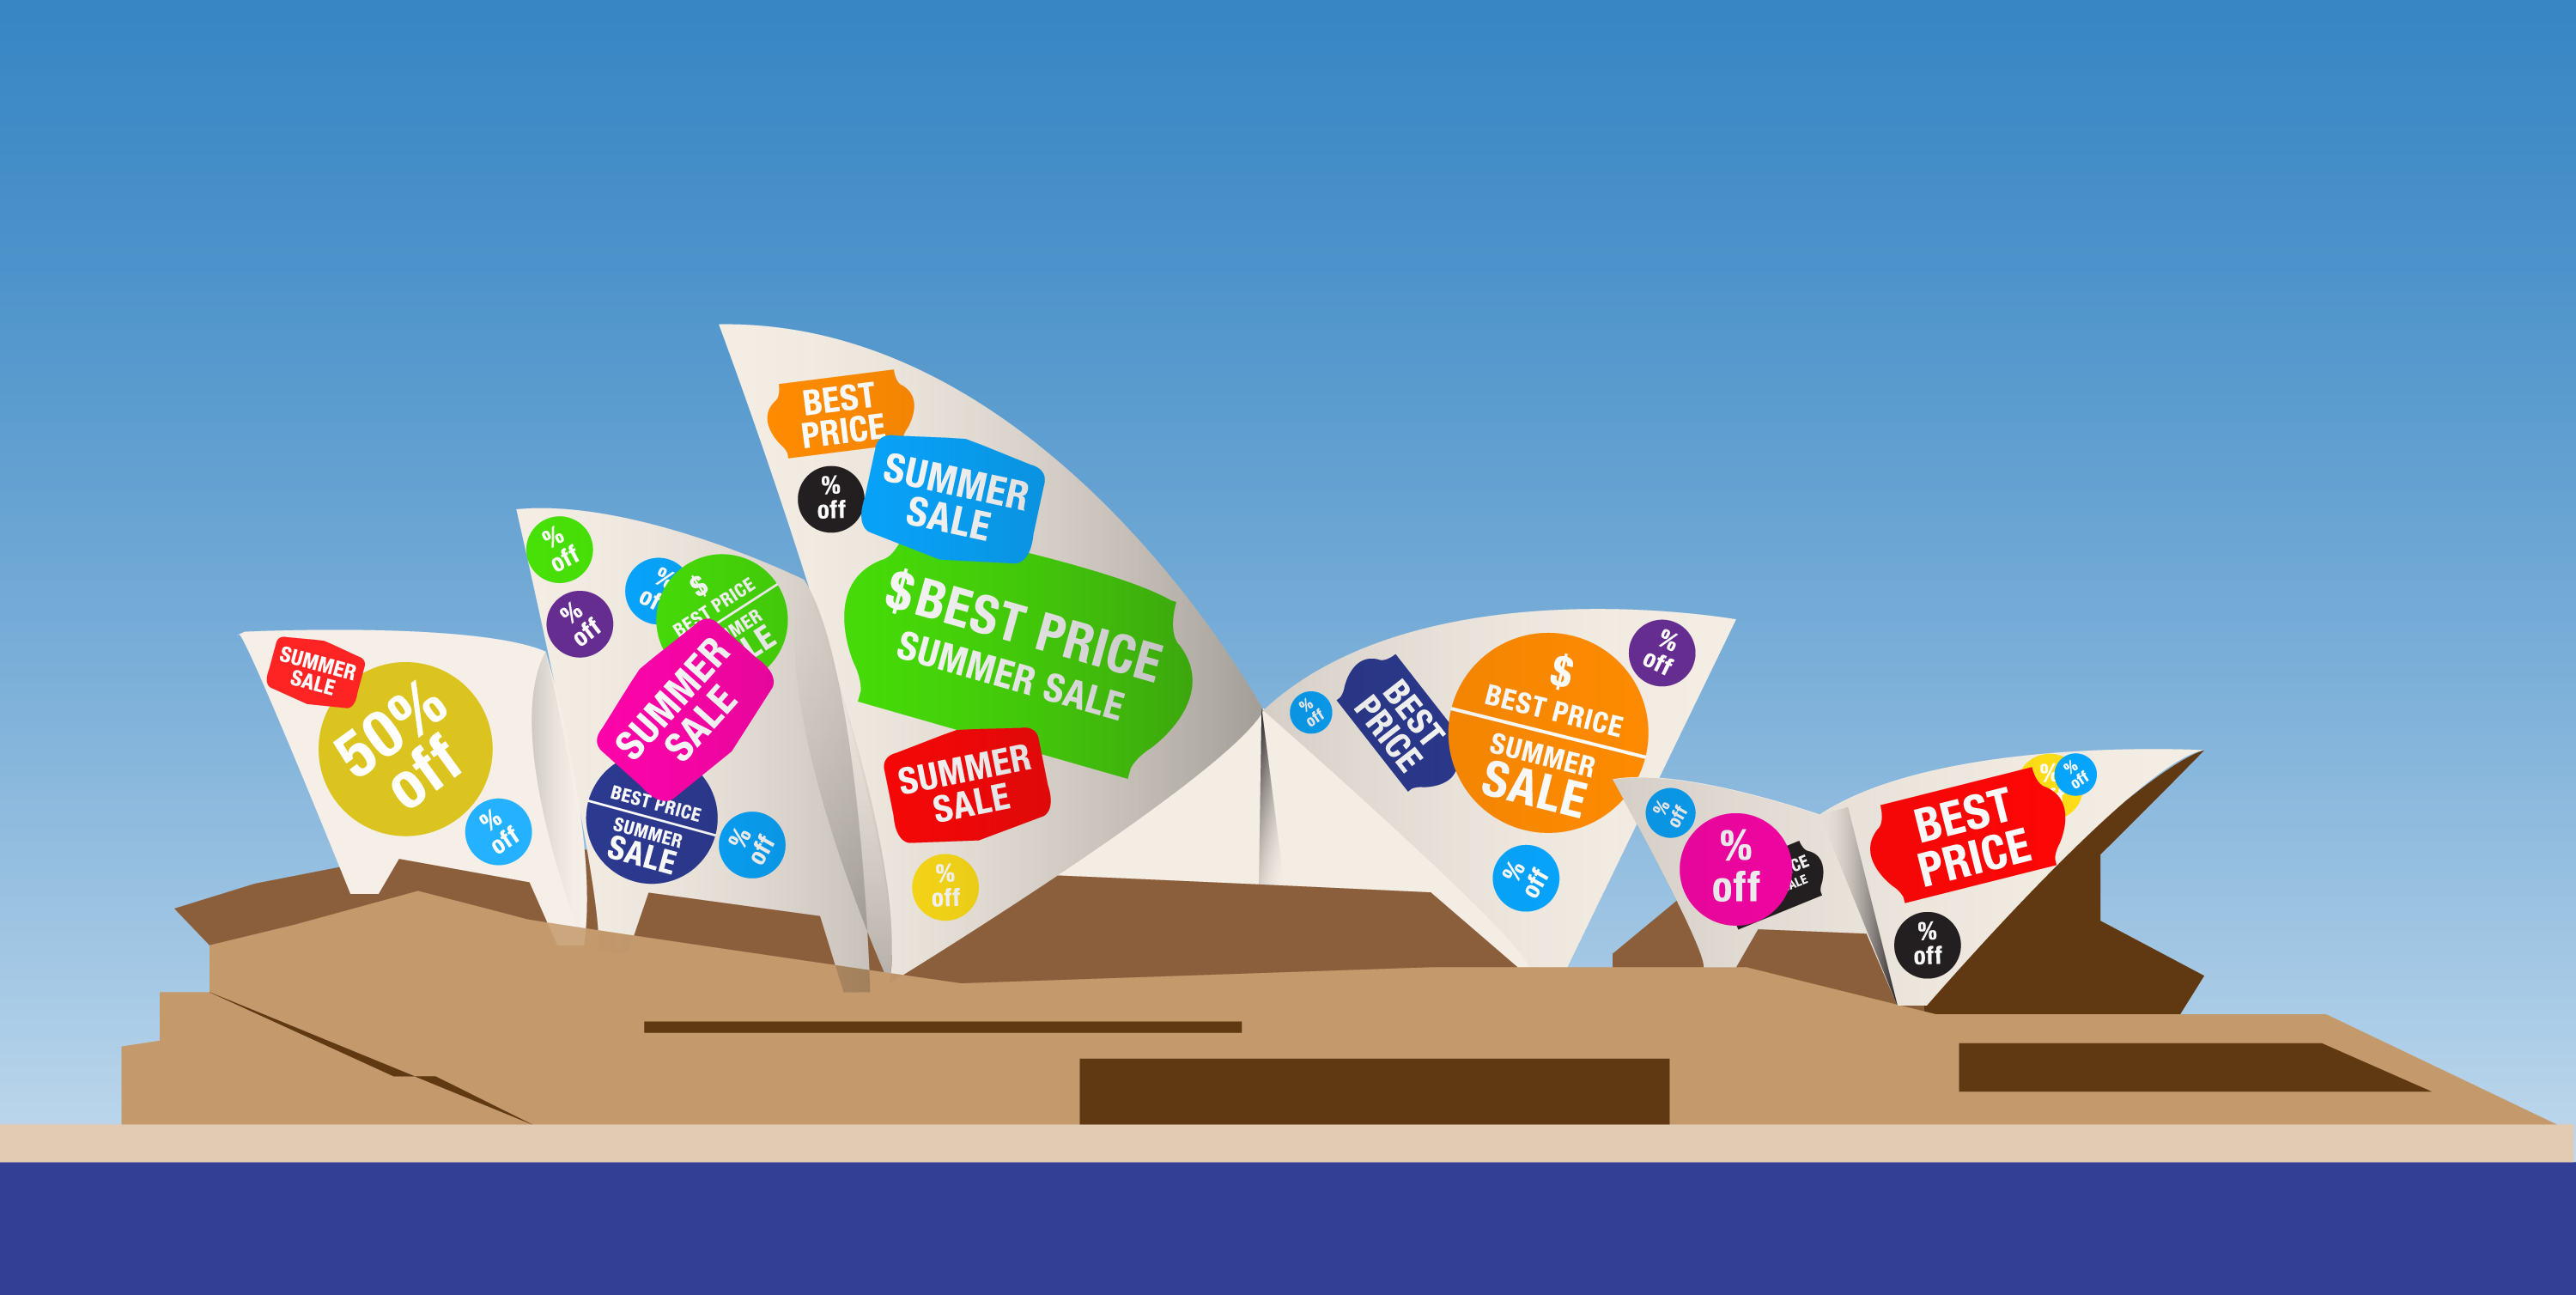 Illustration of the Sydney opera house covered in sale stickers